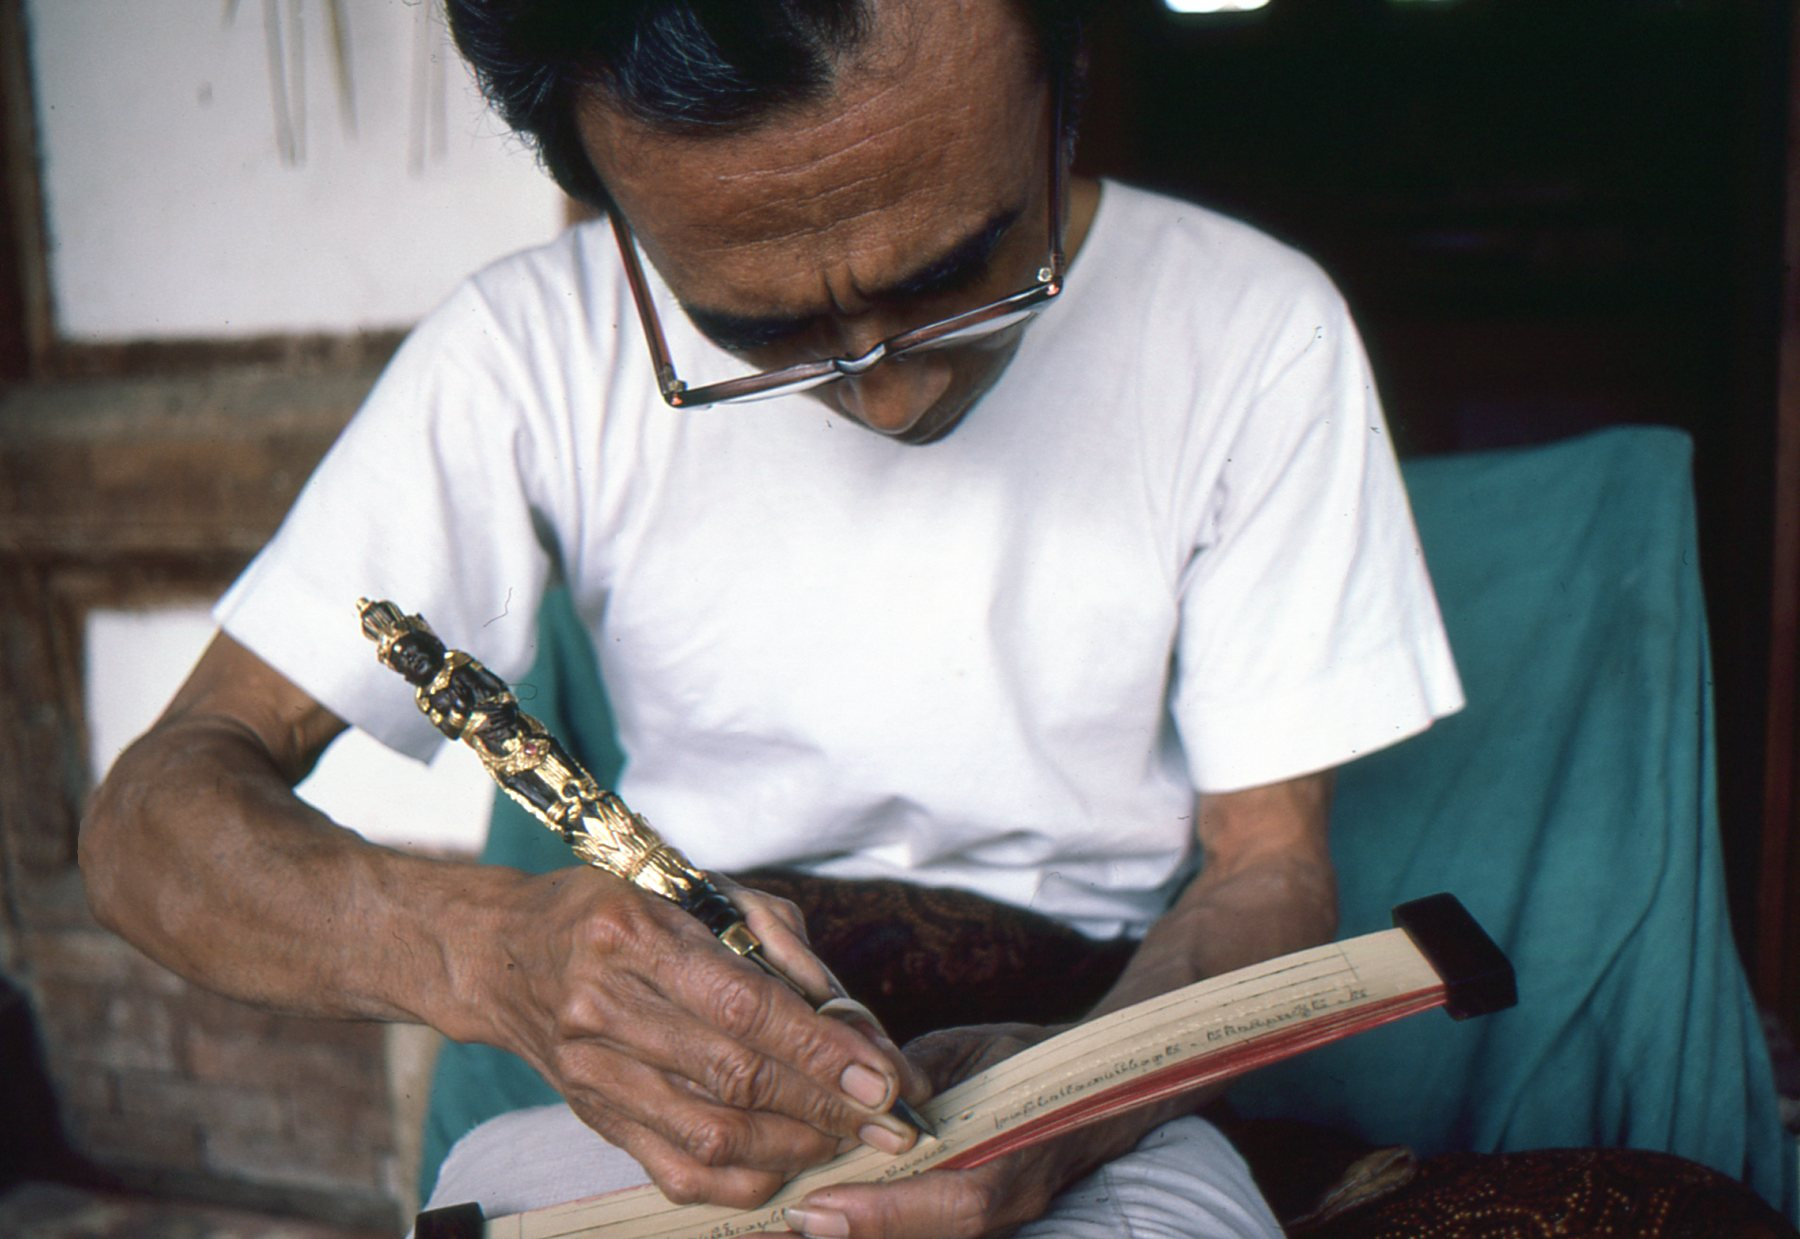 In Tenganan, the best-preserved Bali Aga village, a scribe writes the ancient lontar script in a traditional book of banana leaves.